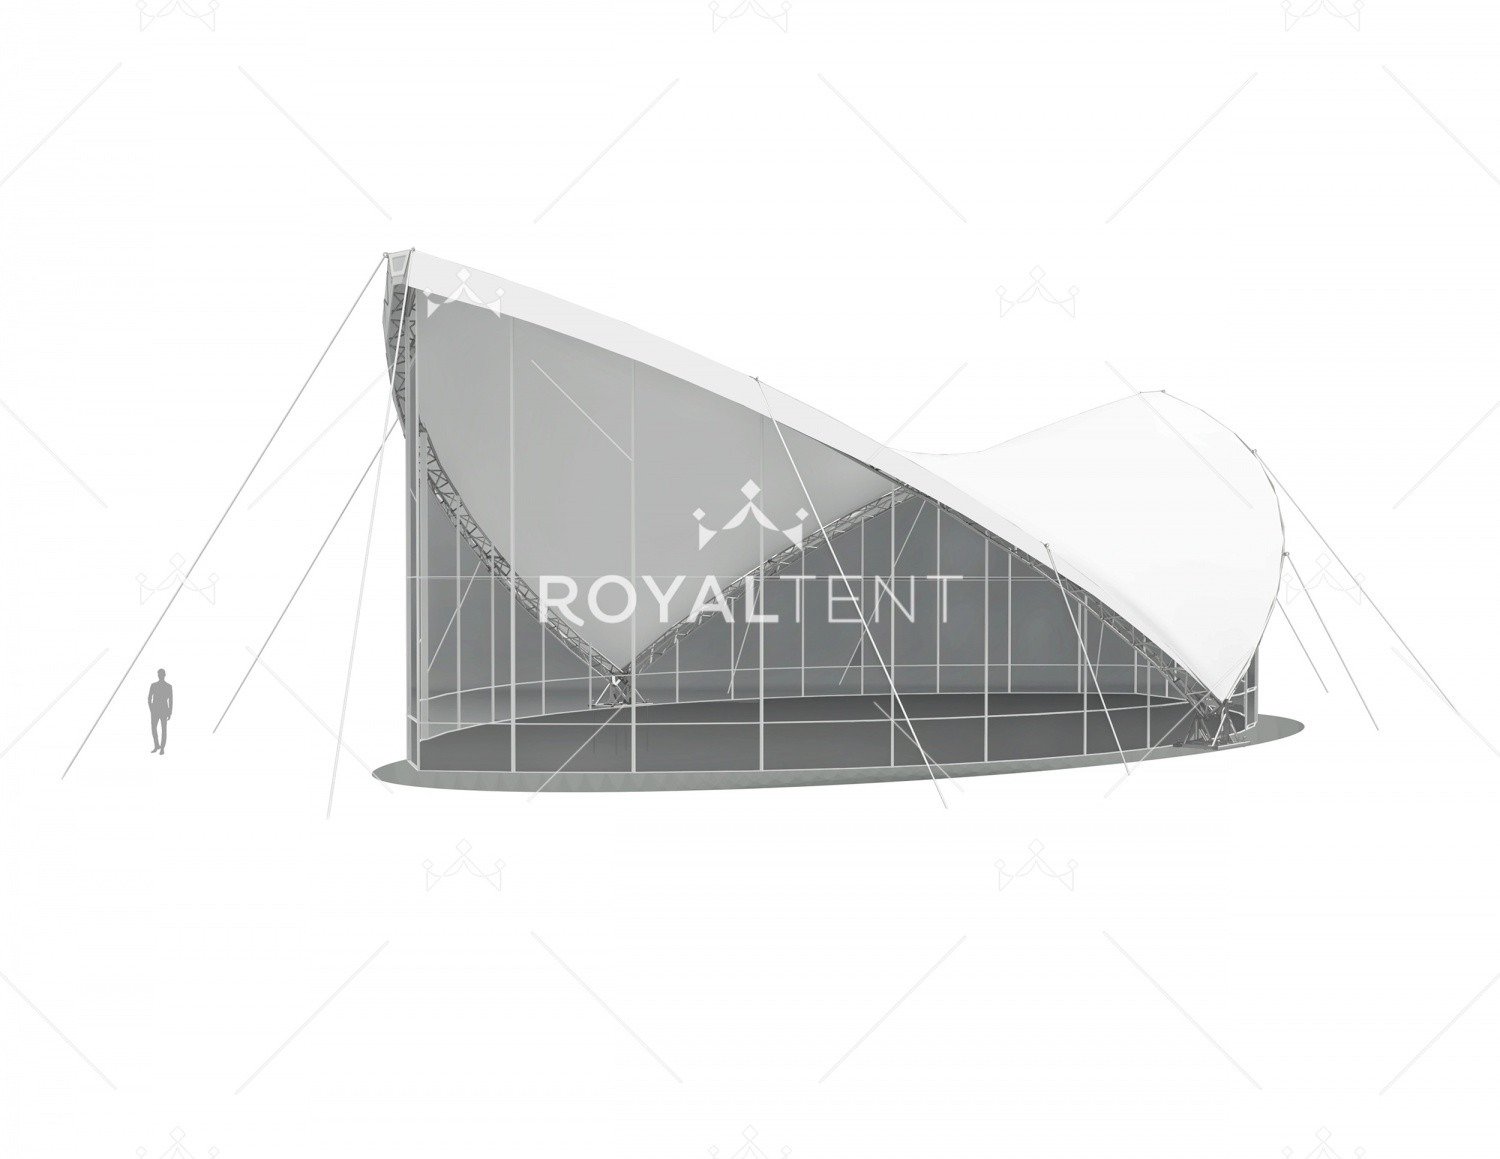 https://royaltent.me/houses_images/tent4_1_200116071915.jpg